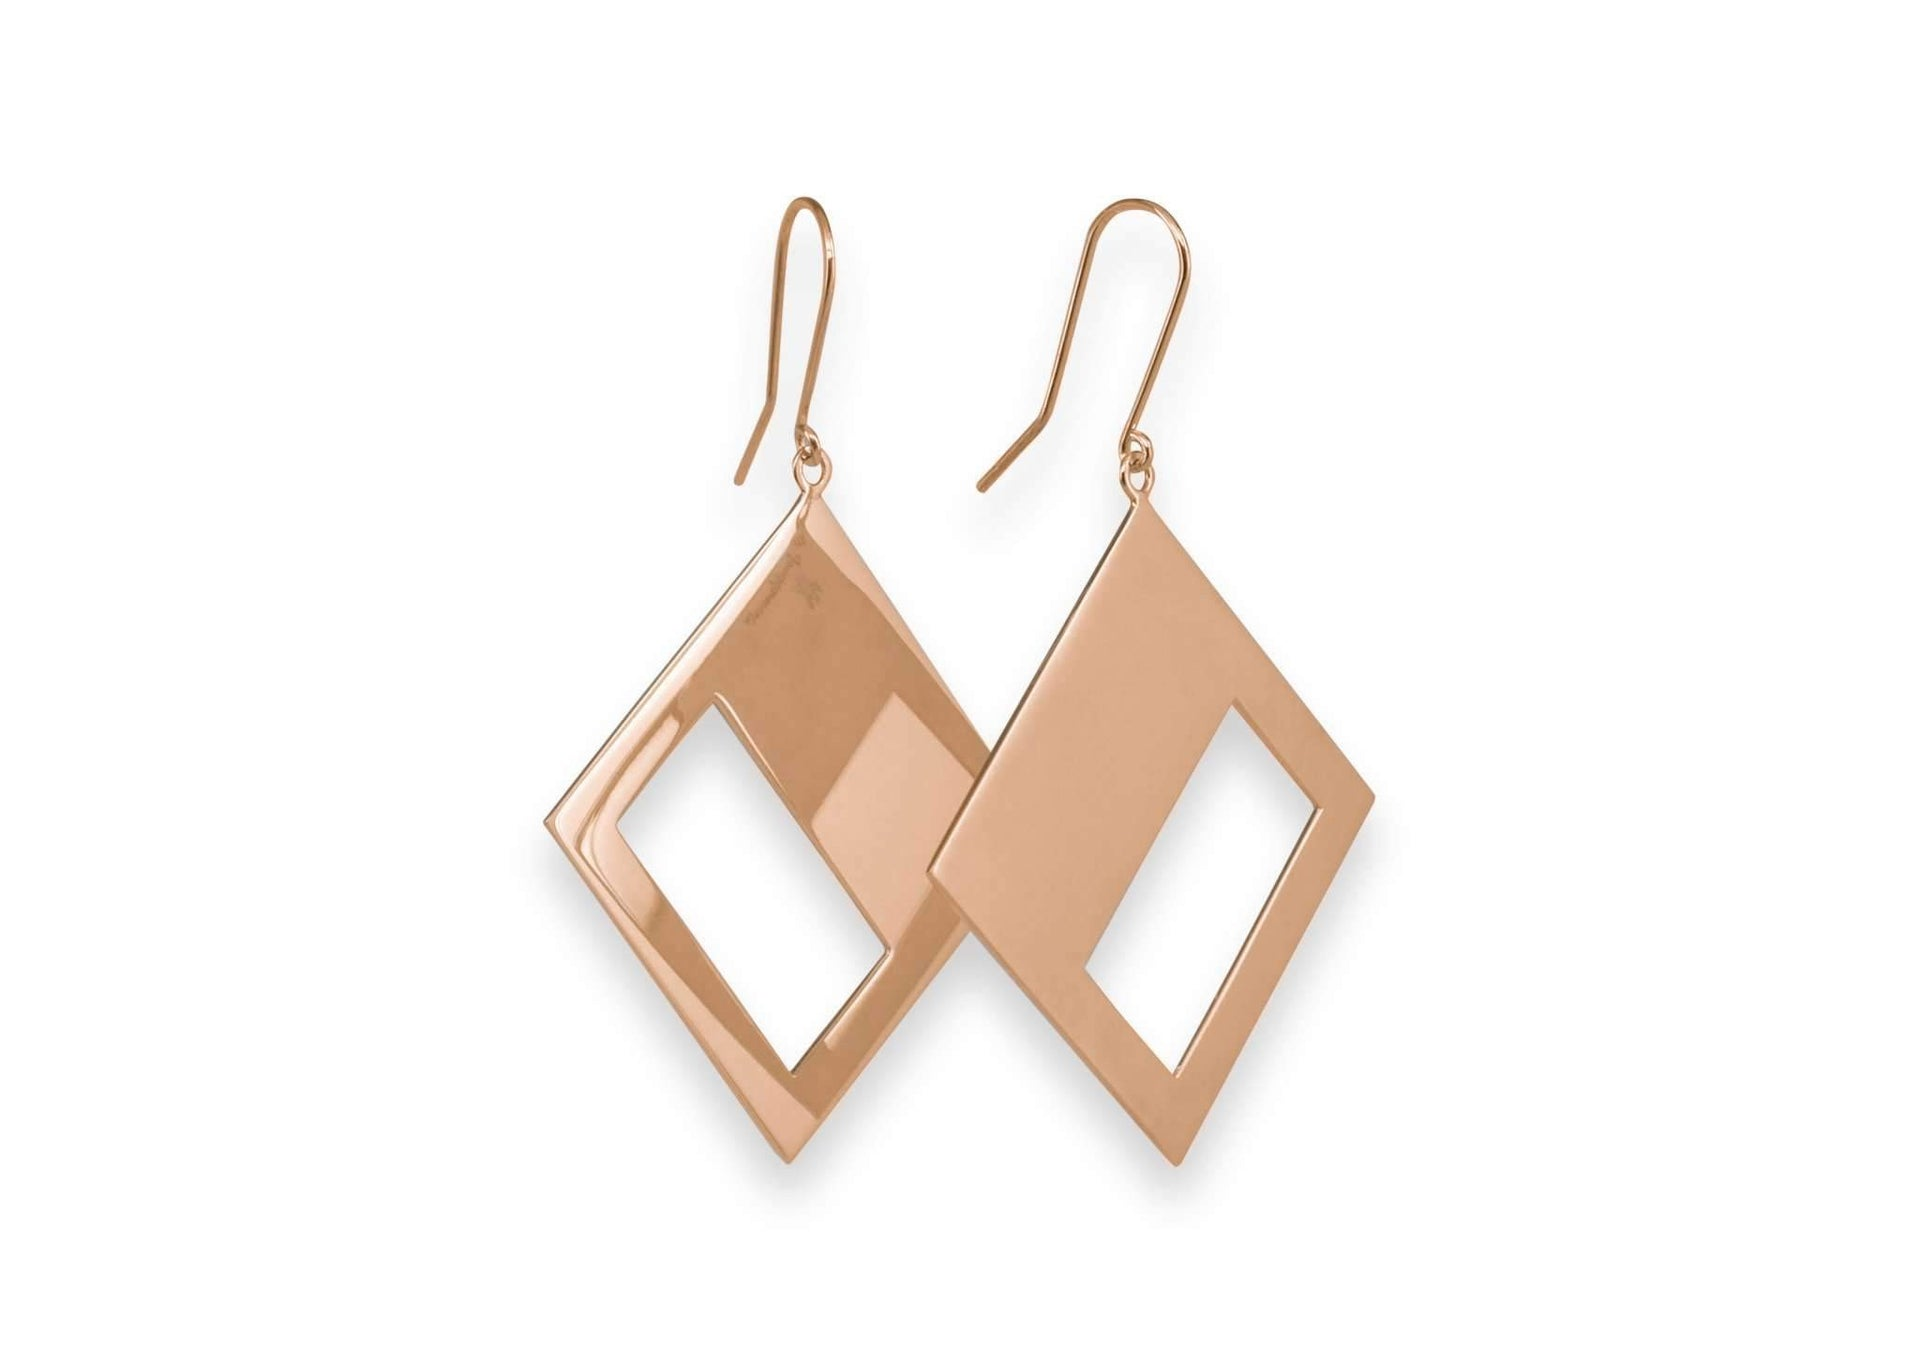 2019 Legacy Portrait Earrings, Red Gold